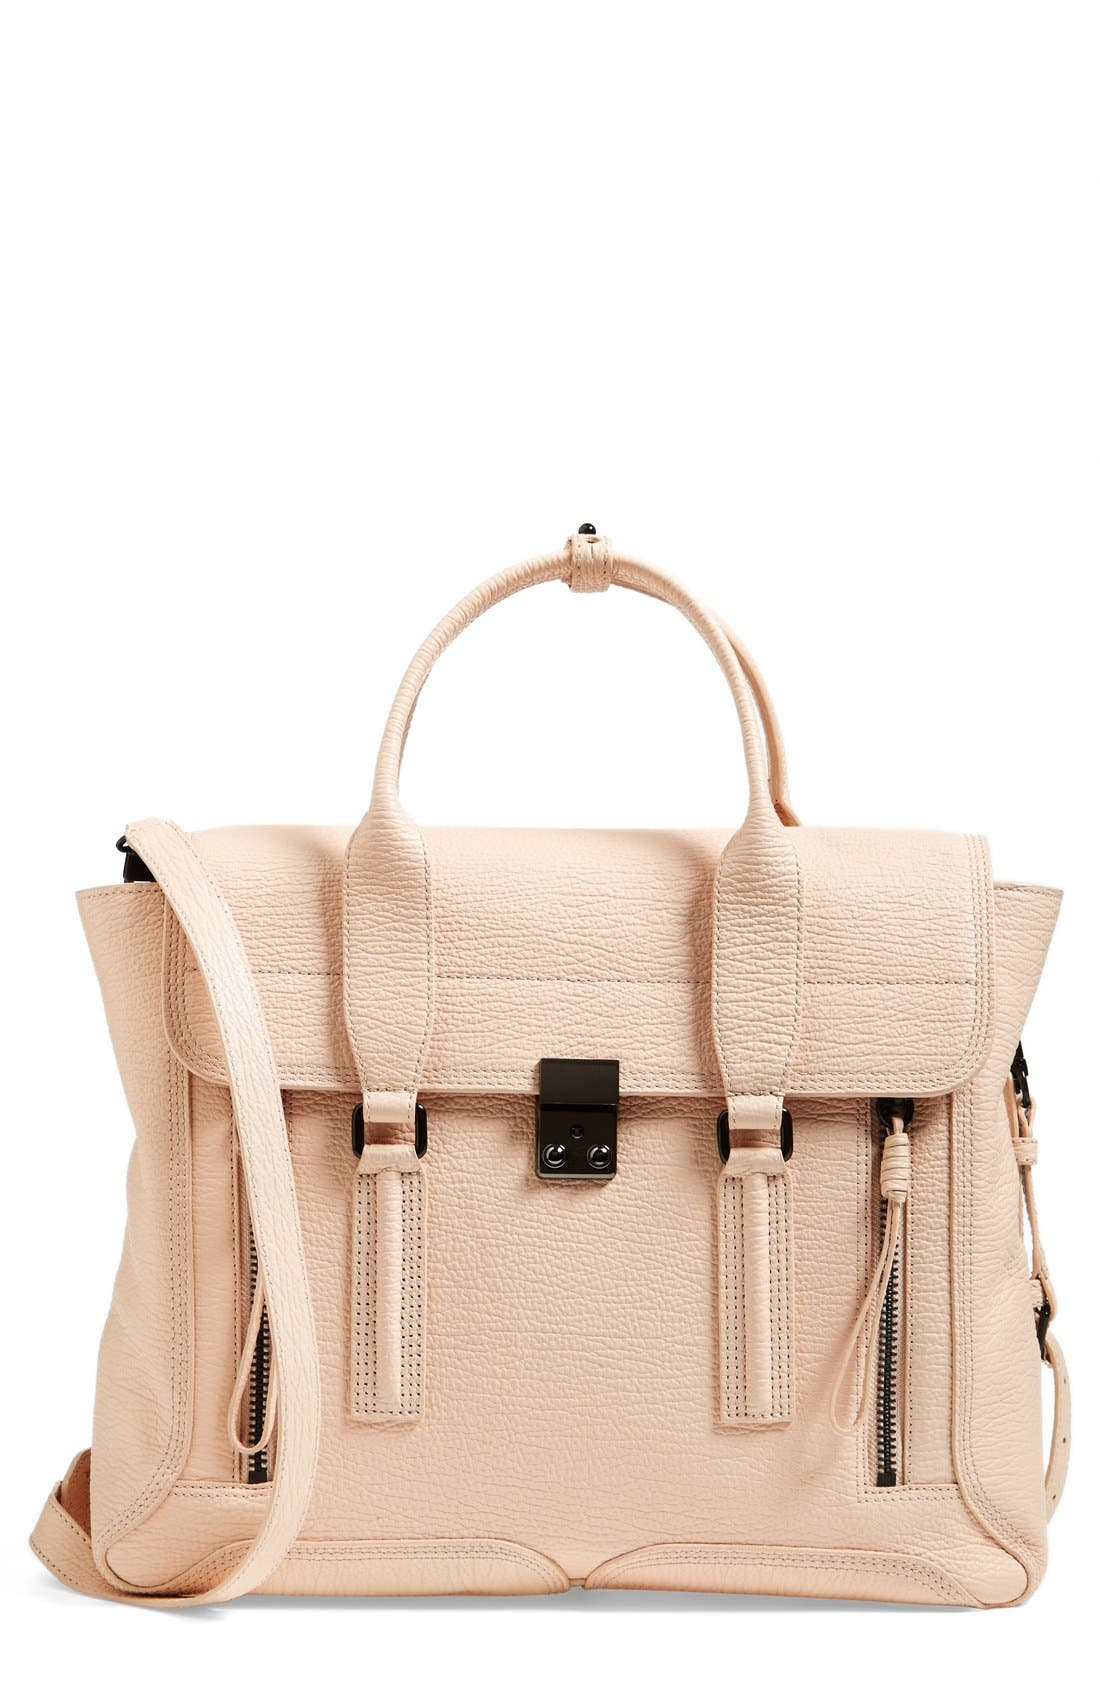 Main Image - 3.1 Phillip Lim 'Pashli' Leather Crossbody Satchel